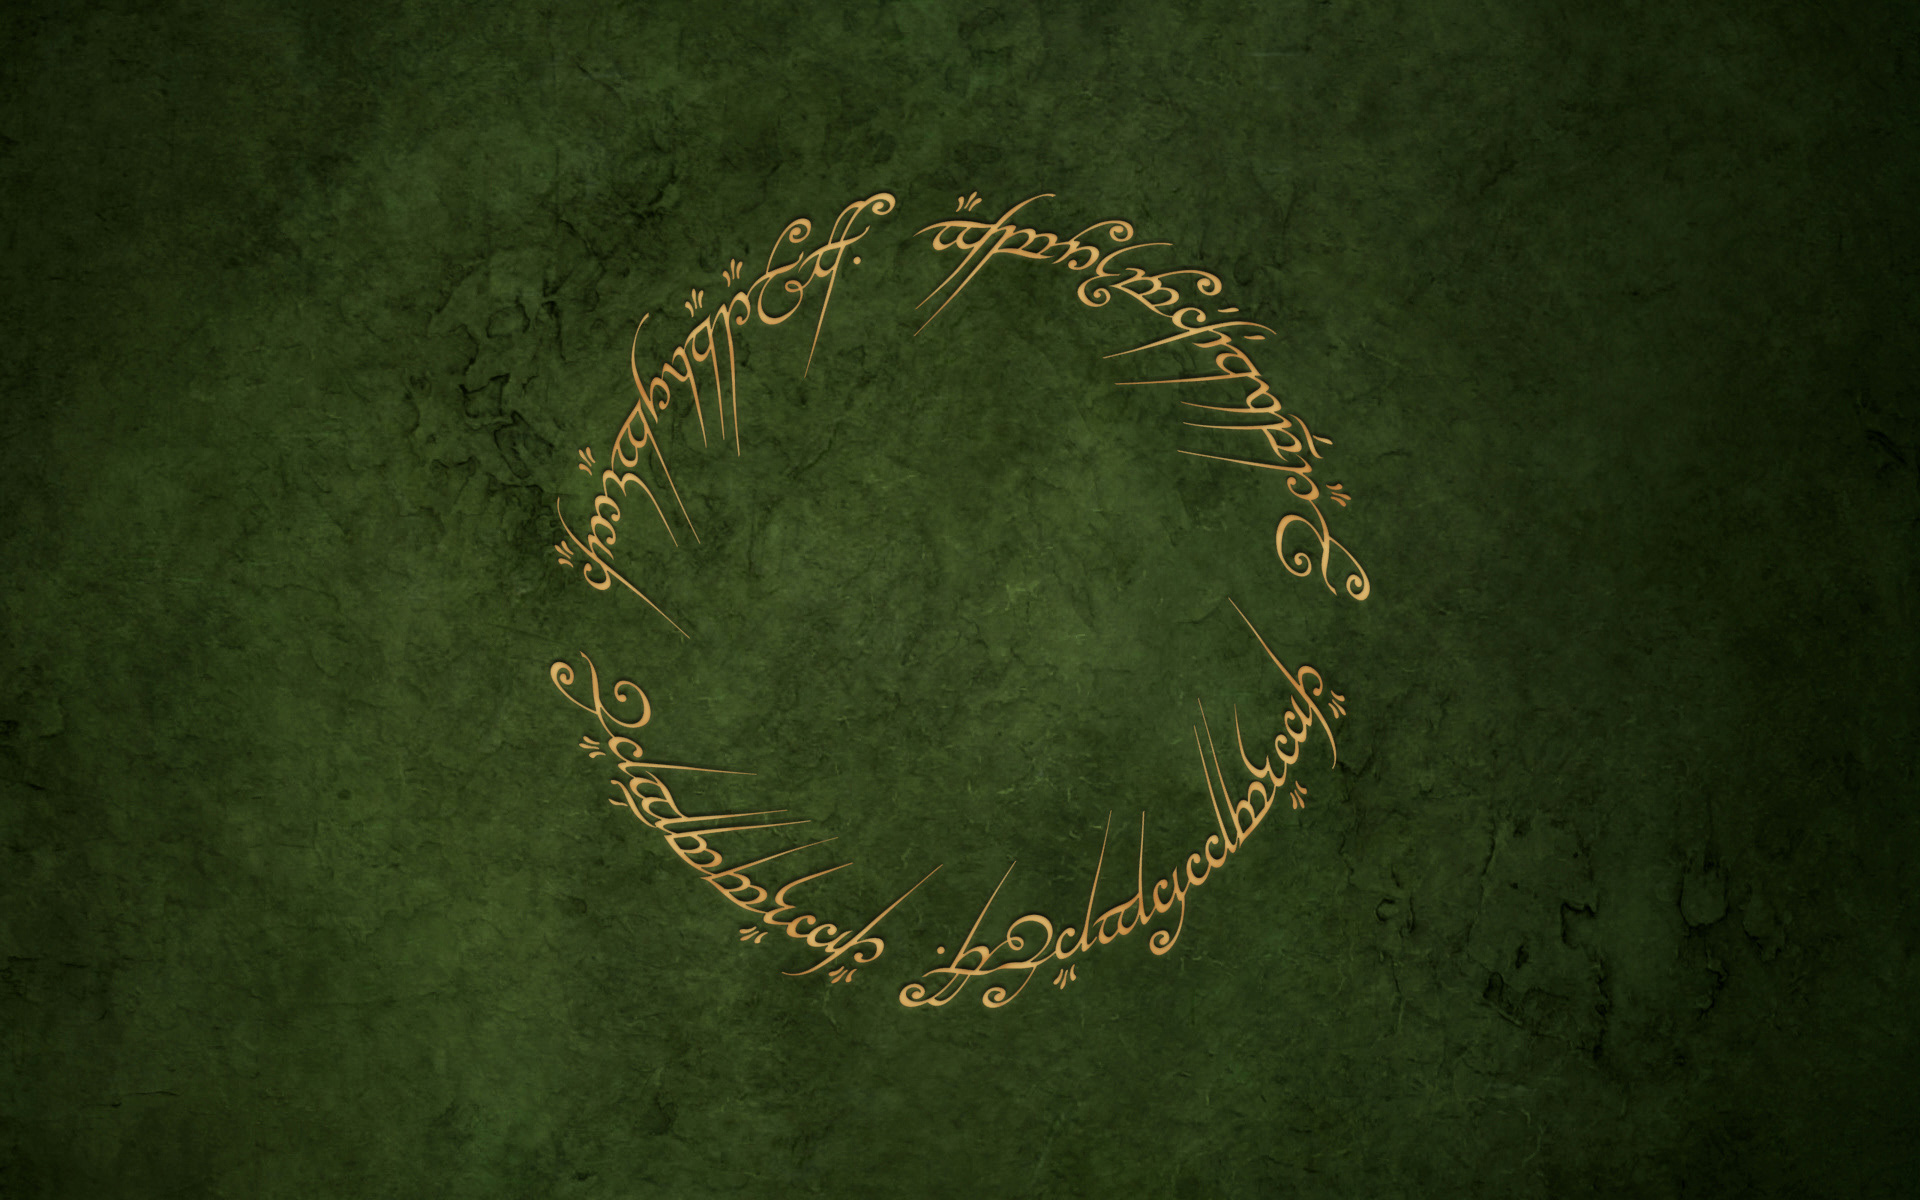 Lord Of The Rings Wallpaper for PC Full HD Pictures 1920x1200